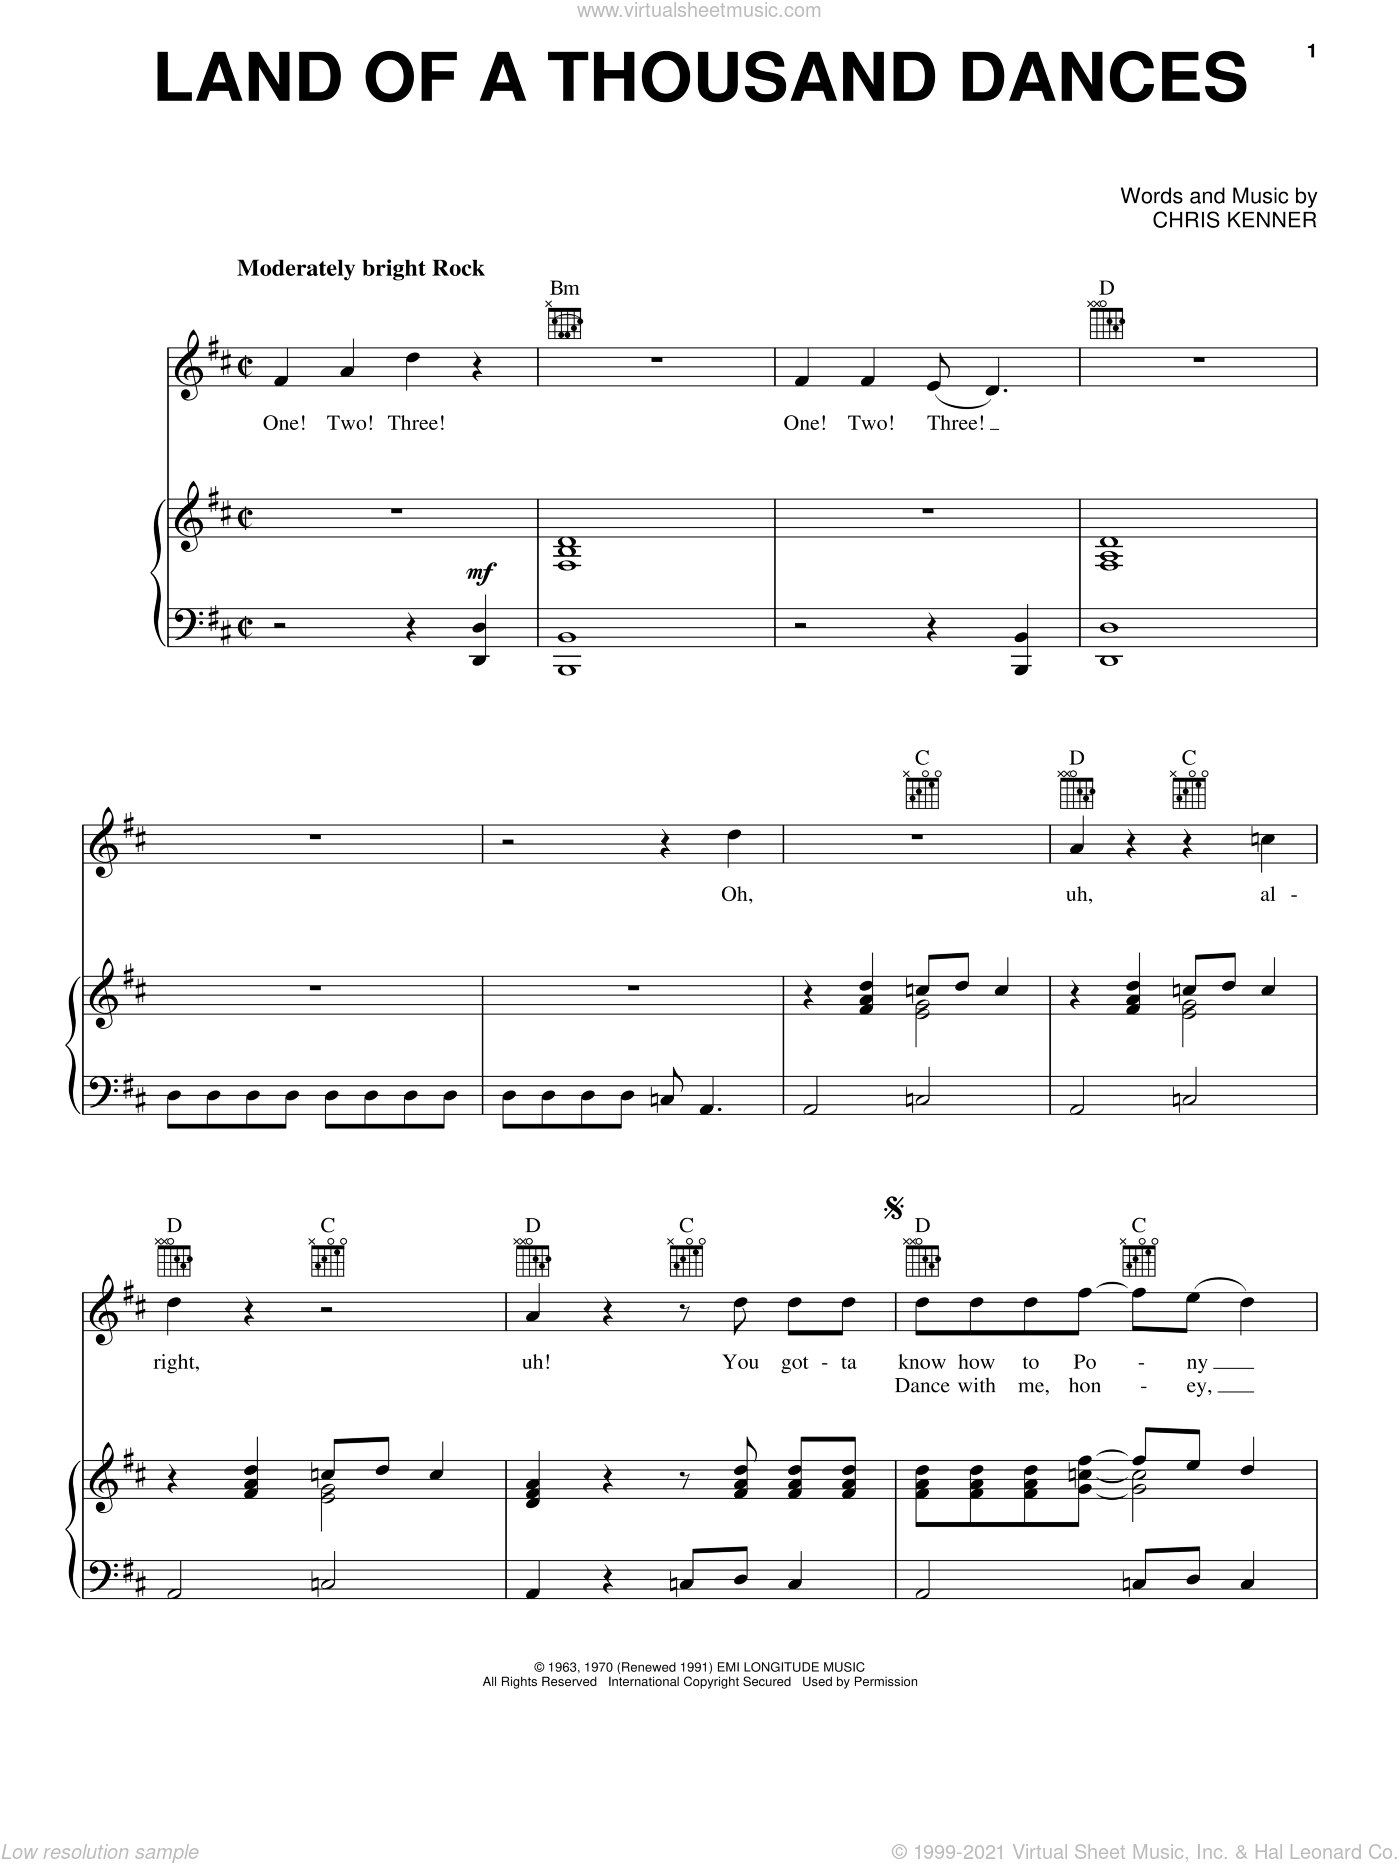 Land Of A Thousand Dances sheet music for voice, piano or guitar by Chris Kenner